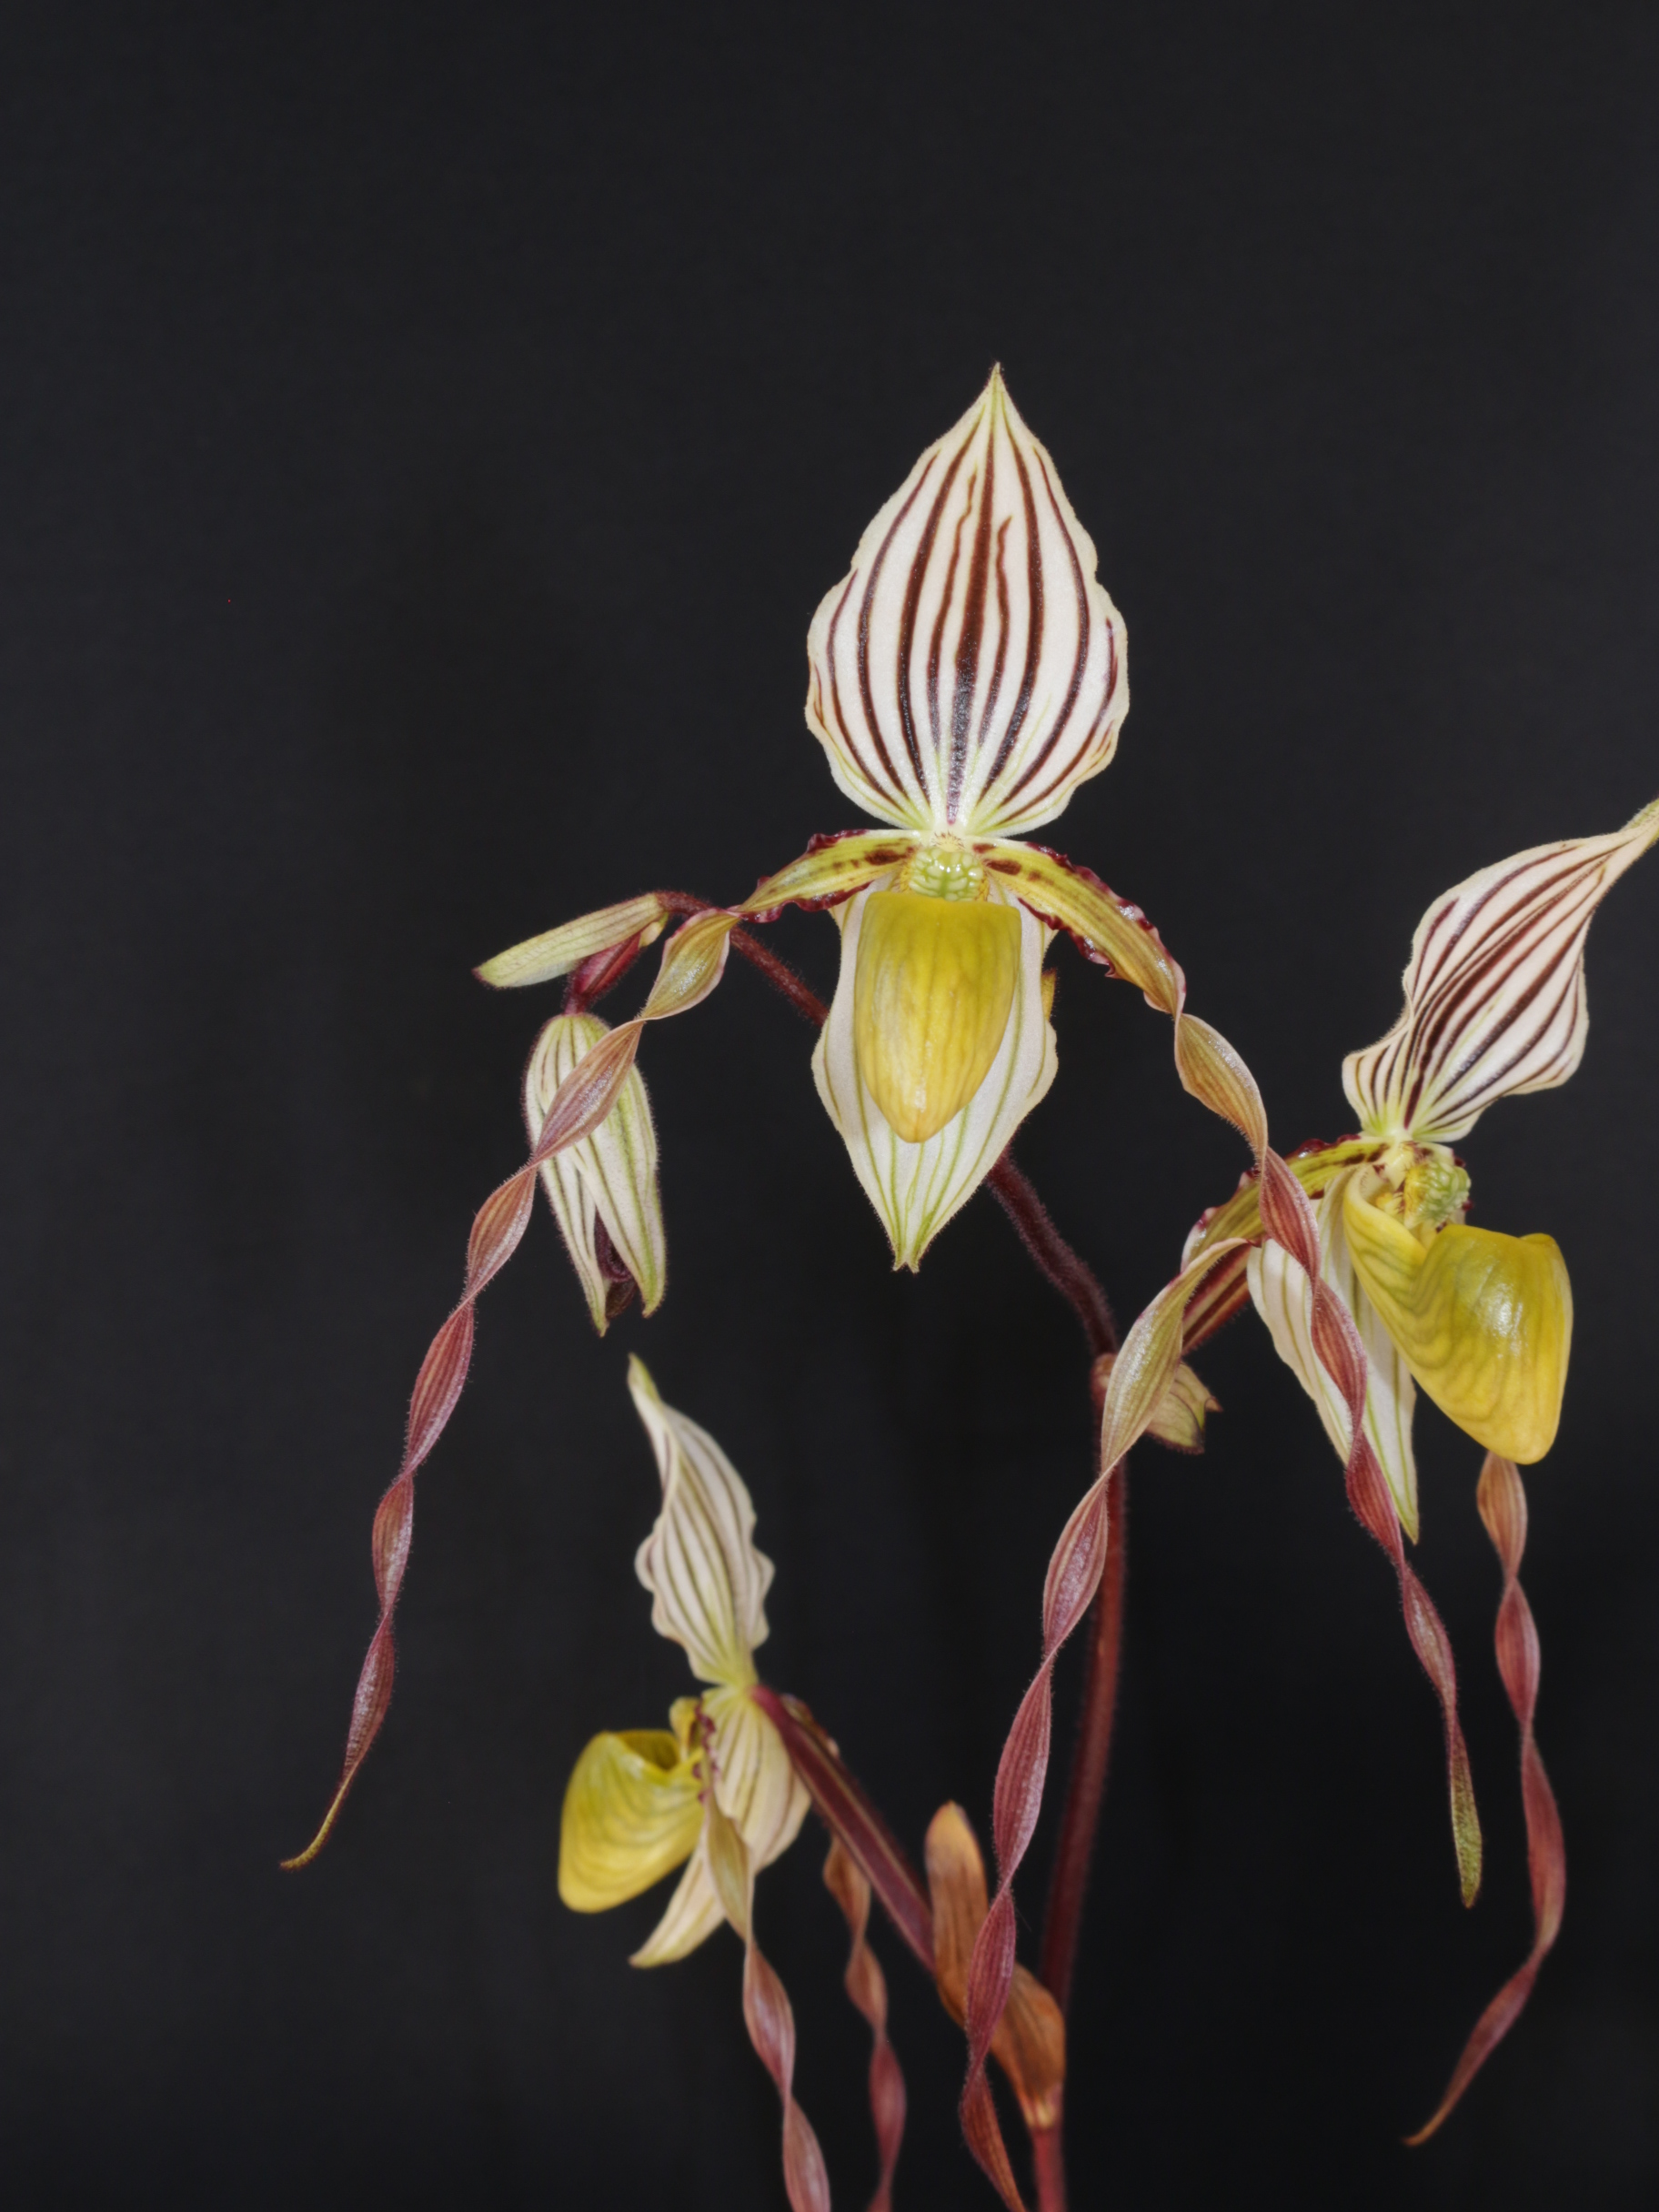 2016-087 Paph. philippinense 'Redvale' HCC 77.05 Owner S & R Tucker Photo C Hubbert OCNZ